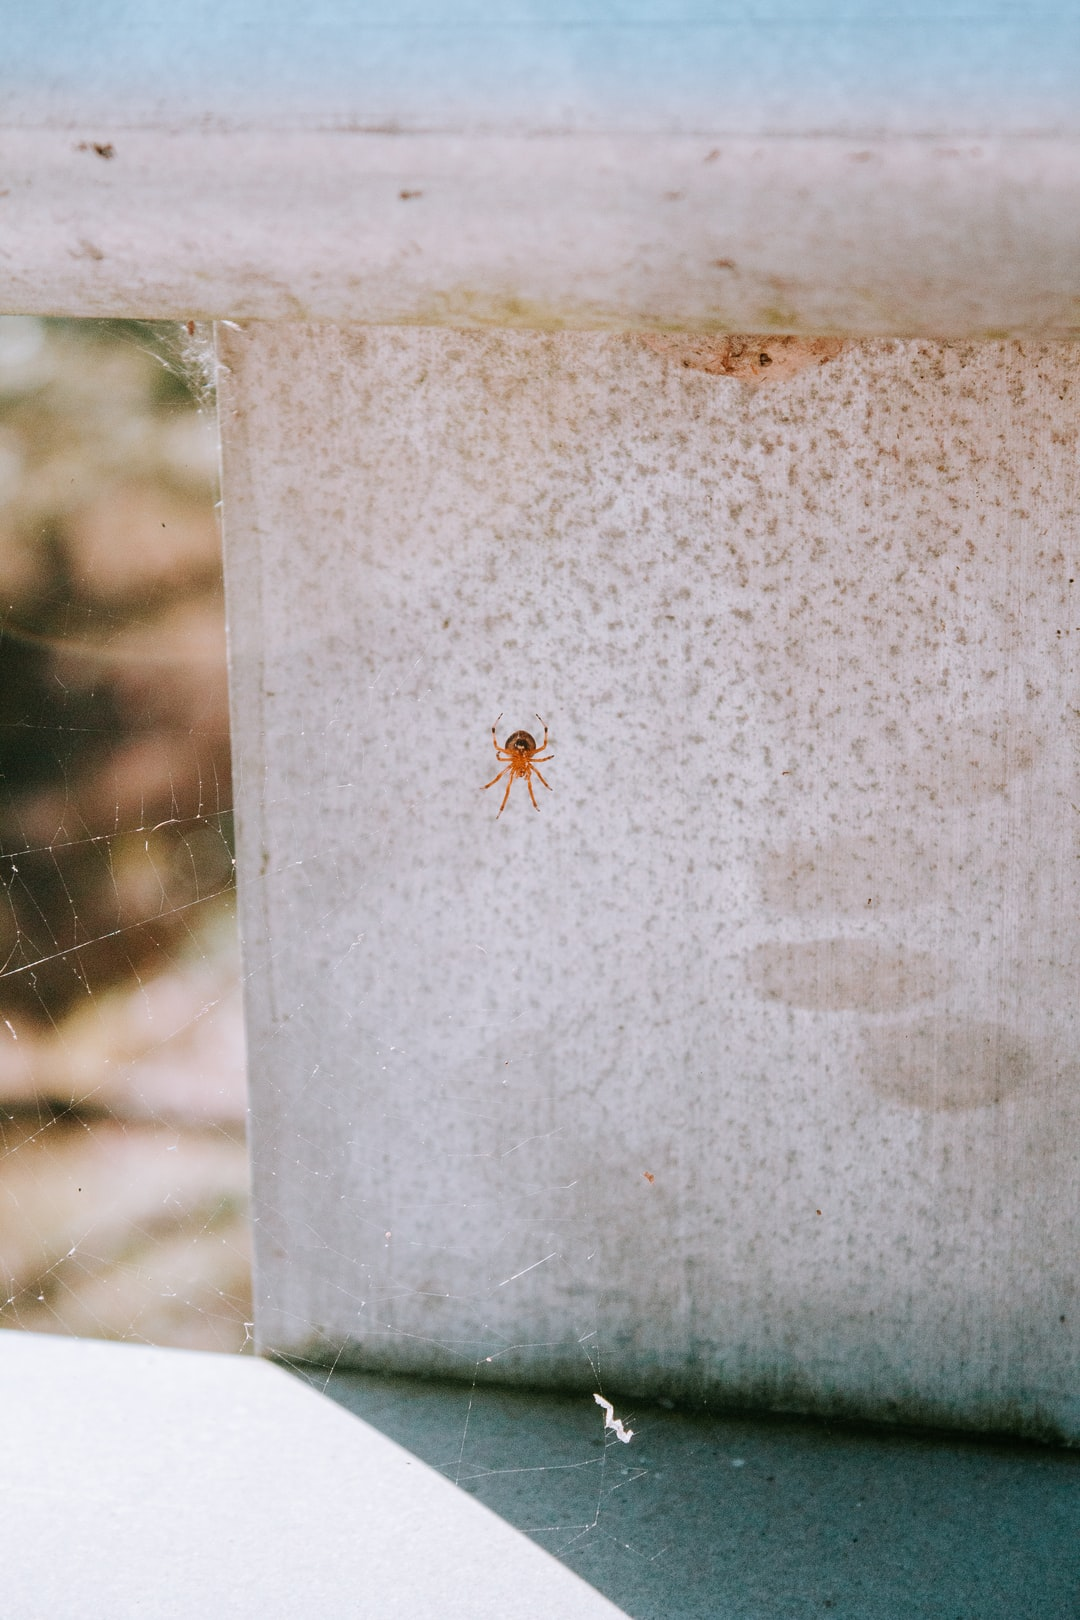 I was actually more excited about finding an actual spider in a web that taking a picture was a bonus.